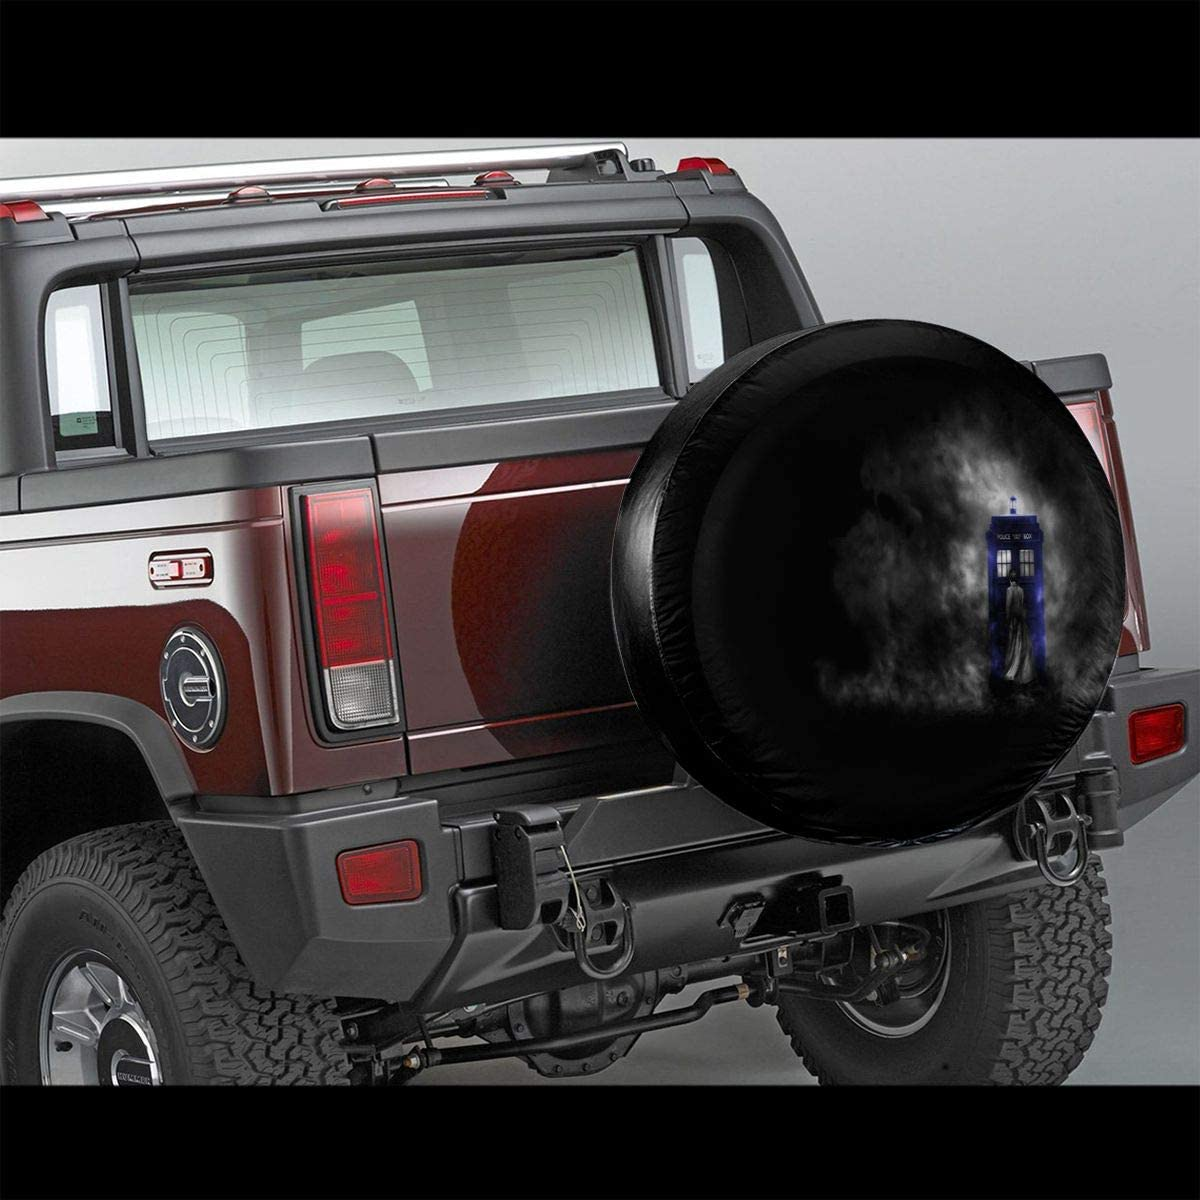 All agree Spare Tire Cover Doctor Who HD Wallpapers Waterproof Dust-Proof Wheel Covers for Car//Trailer//RV//SUV//Truck//Boat//Motorhome